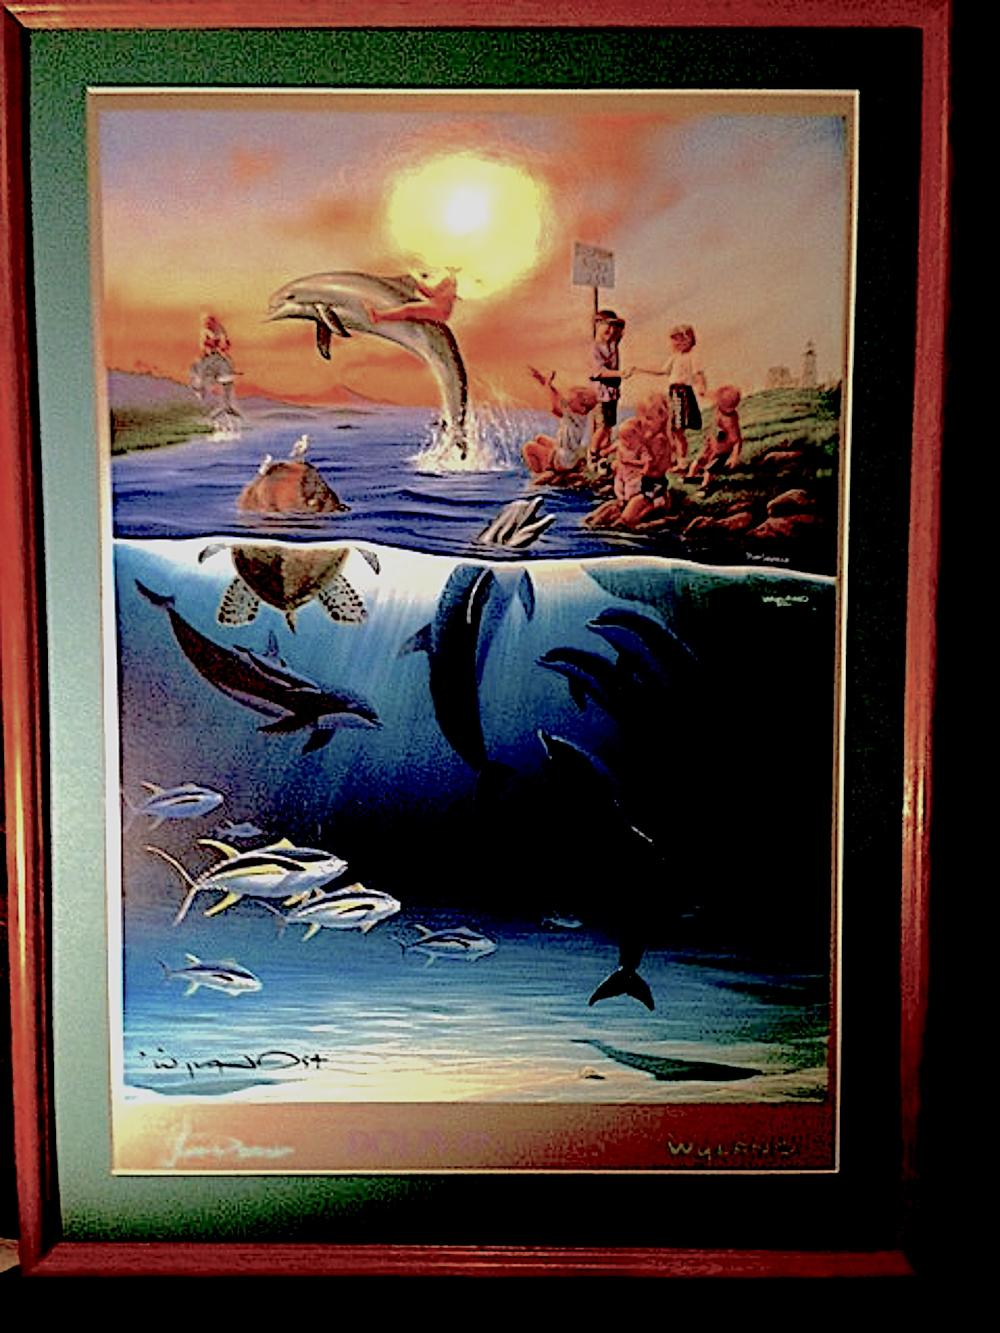 Sold Price Dolphin Rides By Robert Wyland January 6 0119 10 00 Am Pst